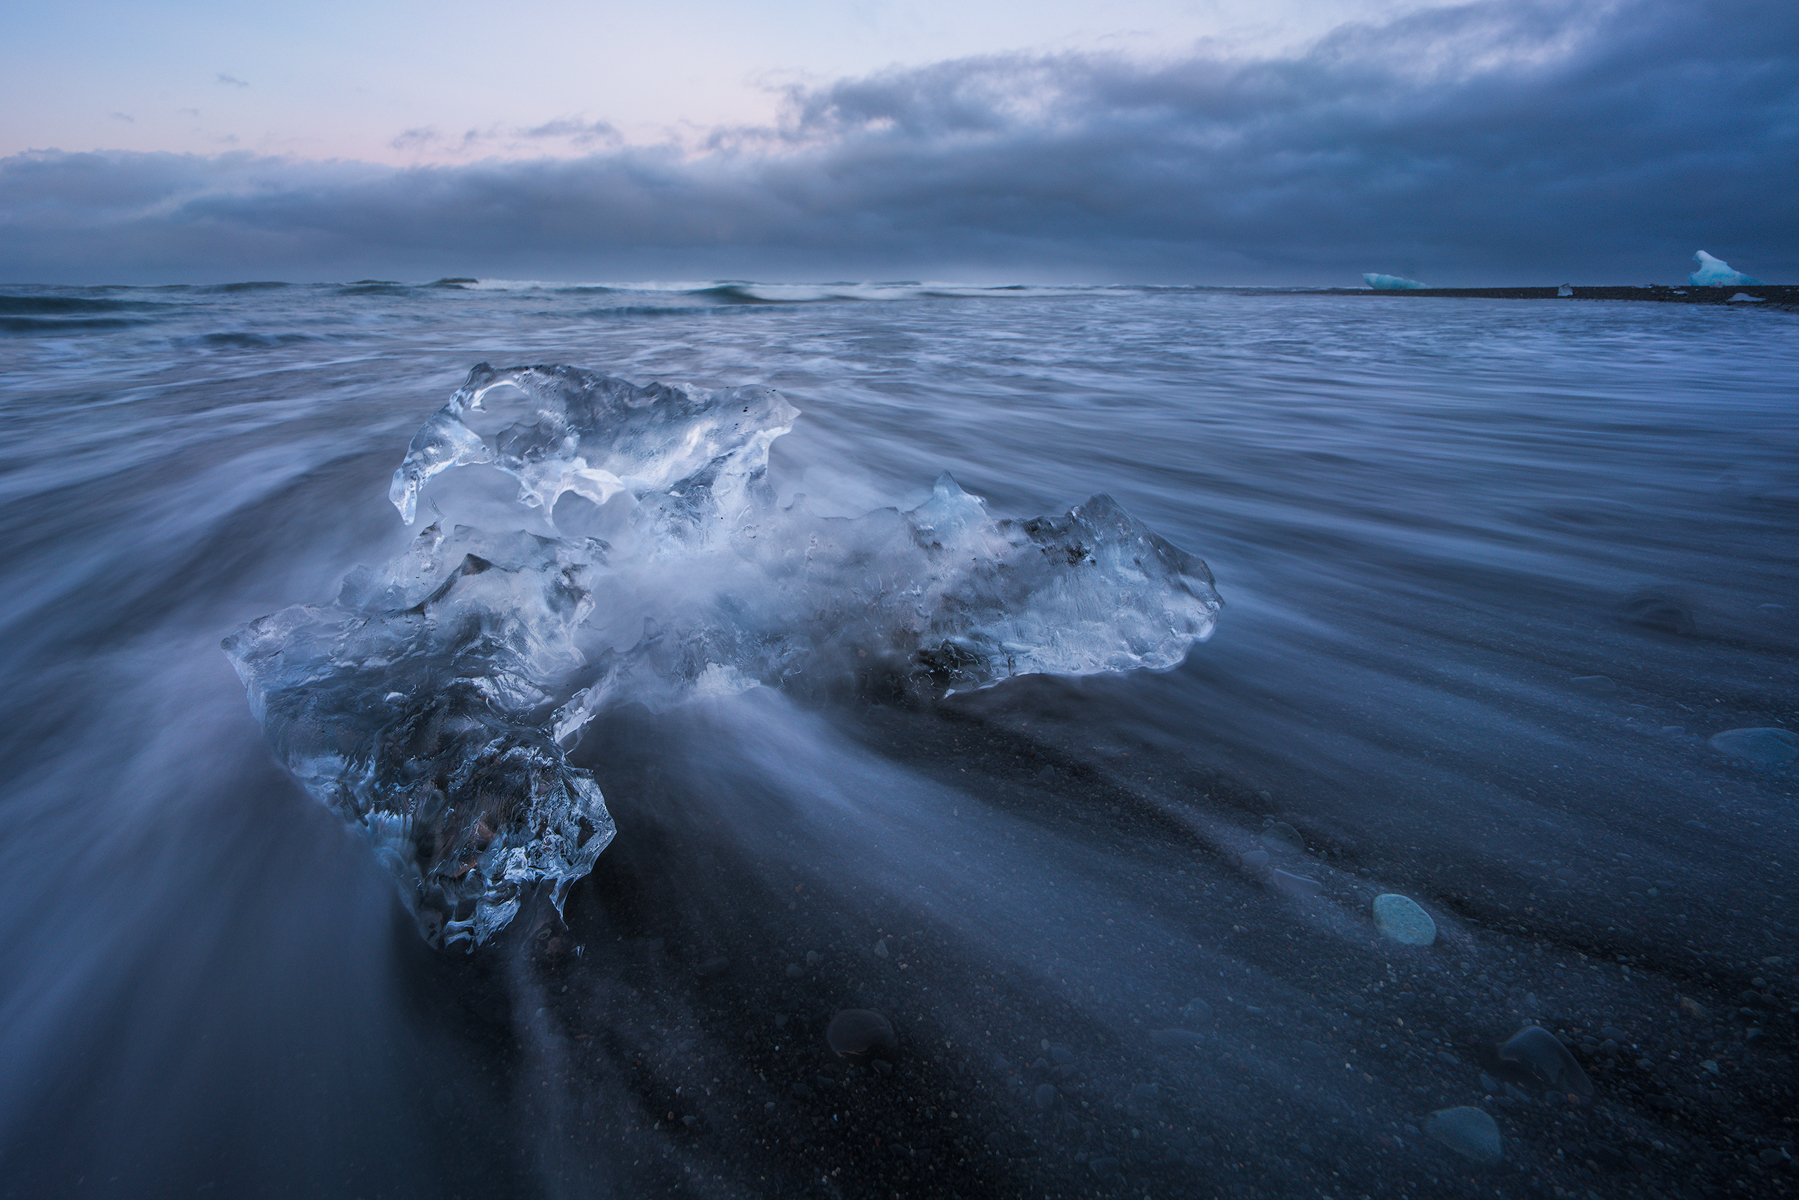 Ice in the Flow No. 4, Jölkusárlón Ice Beach, | Sony a7RII and a Voigtlander 15mm f4.5 Heliar III | Image Exposed at ISO 100 at f11 for 1 Second.